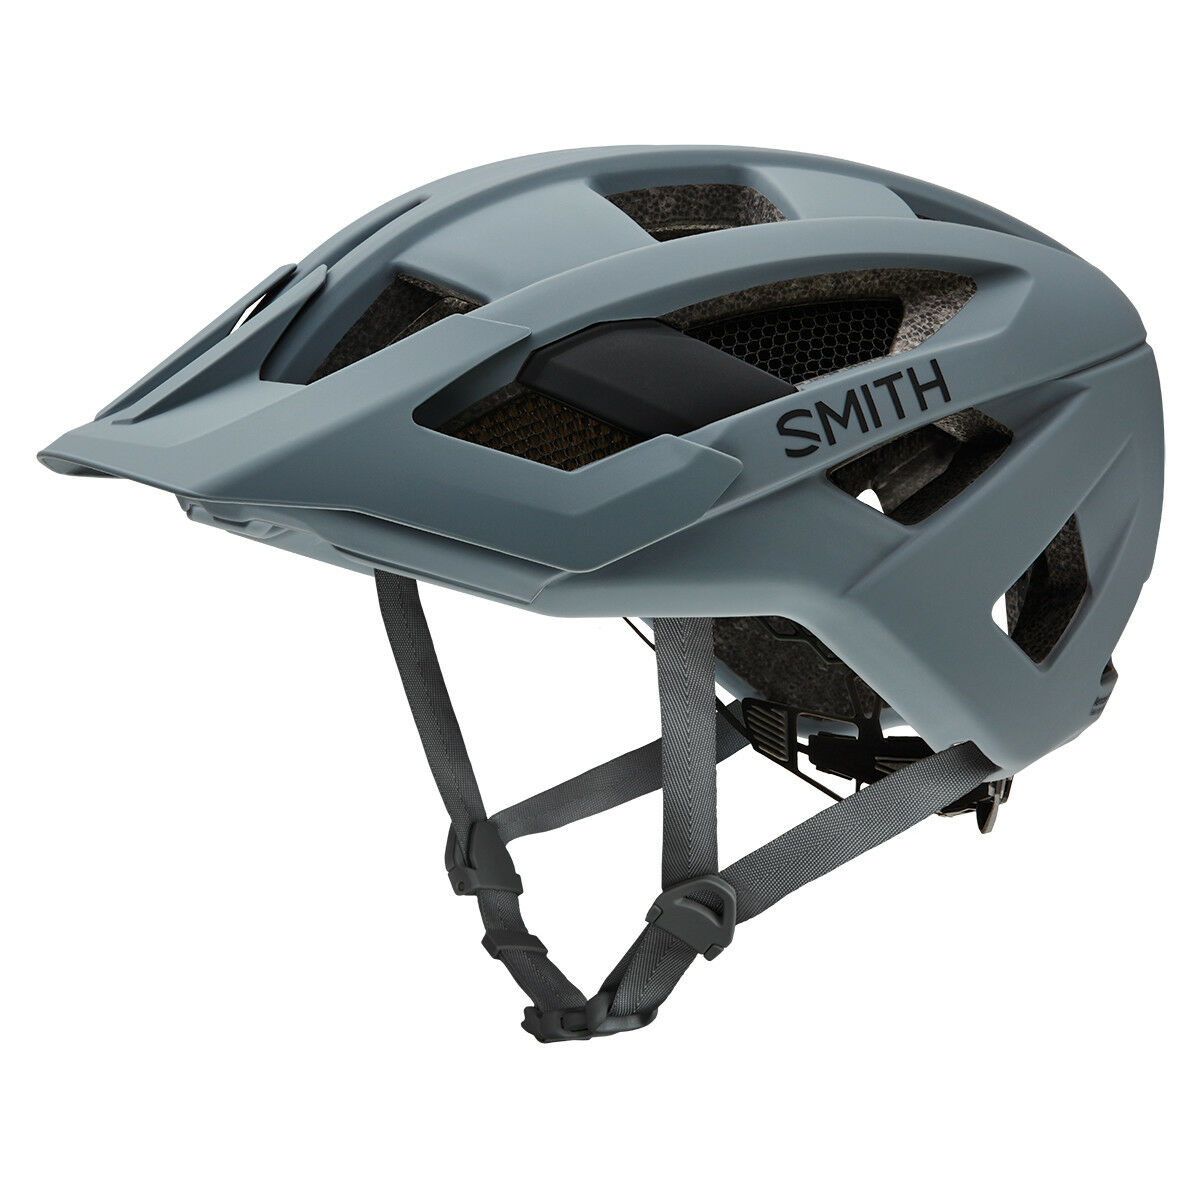 SMITH Rover MIPS MTB Cycle Bike Helmet Matte Charcoal Grey Kolroyd S   M   L